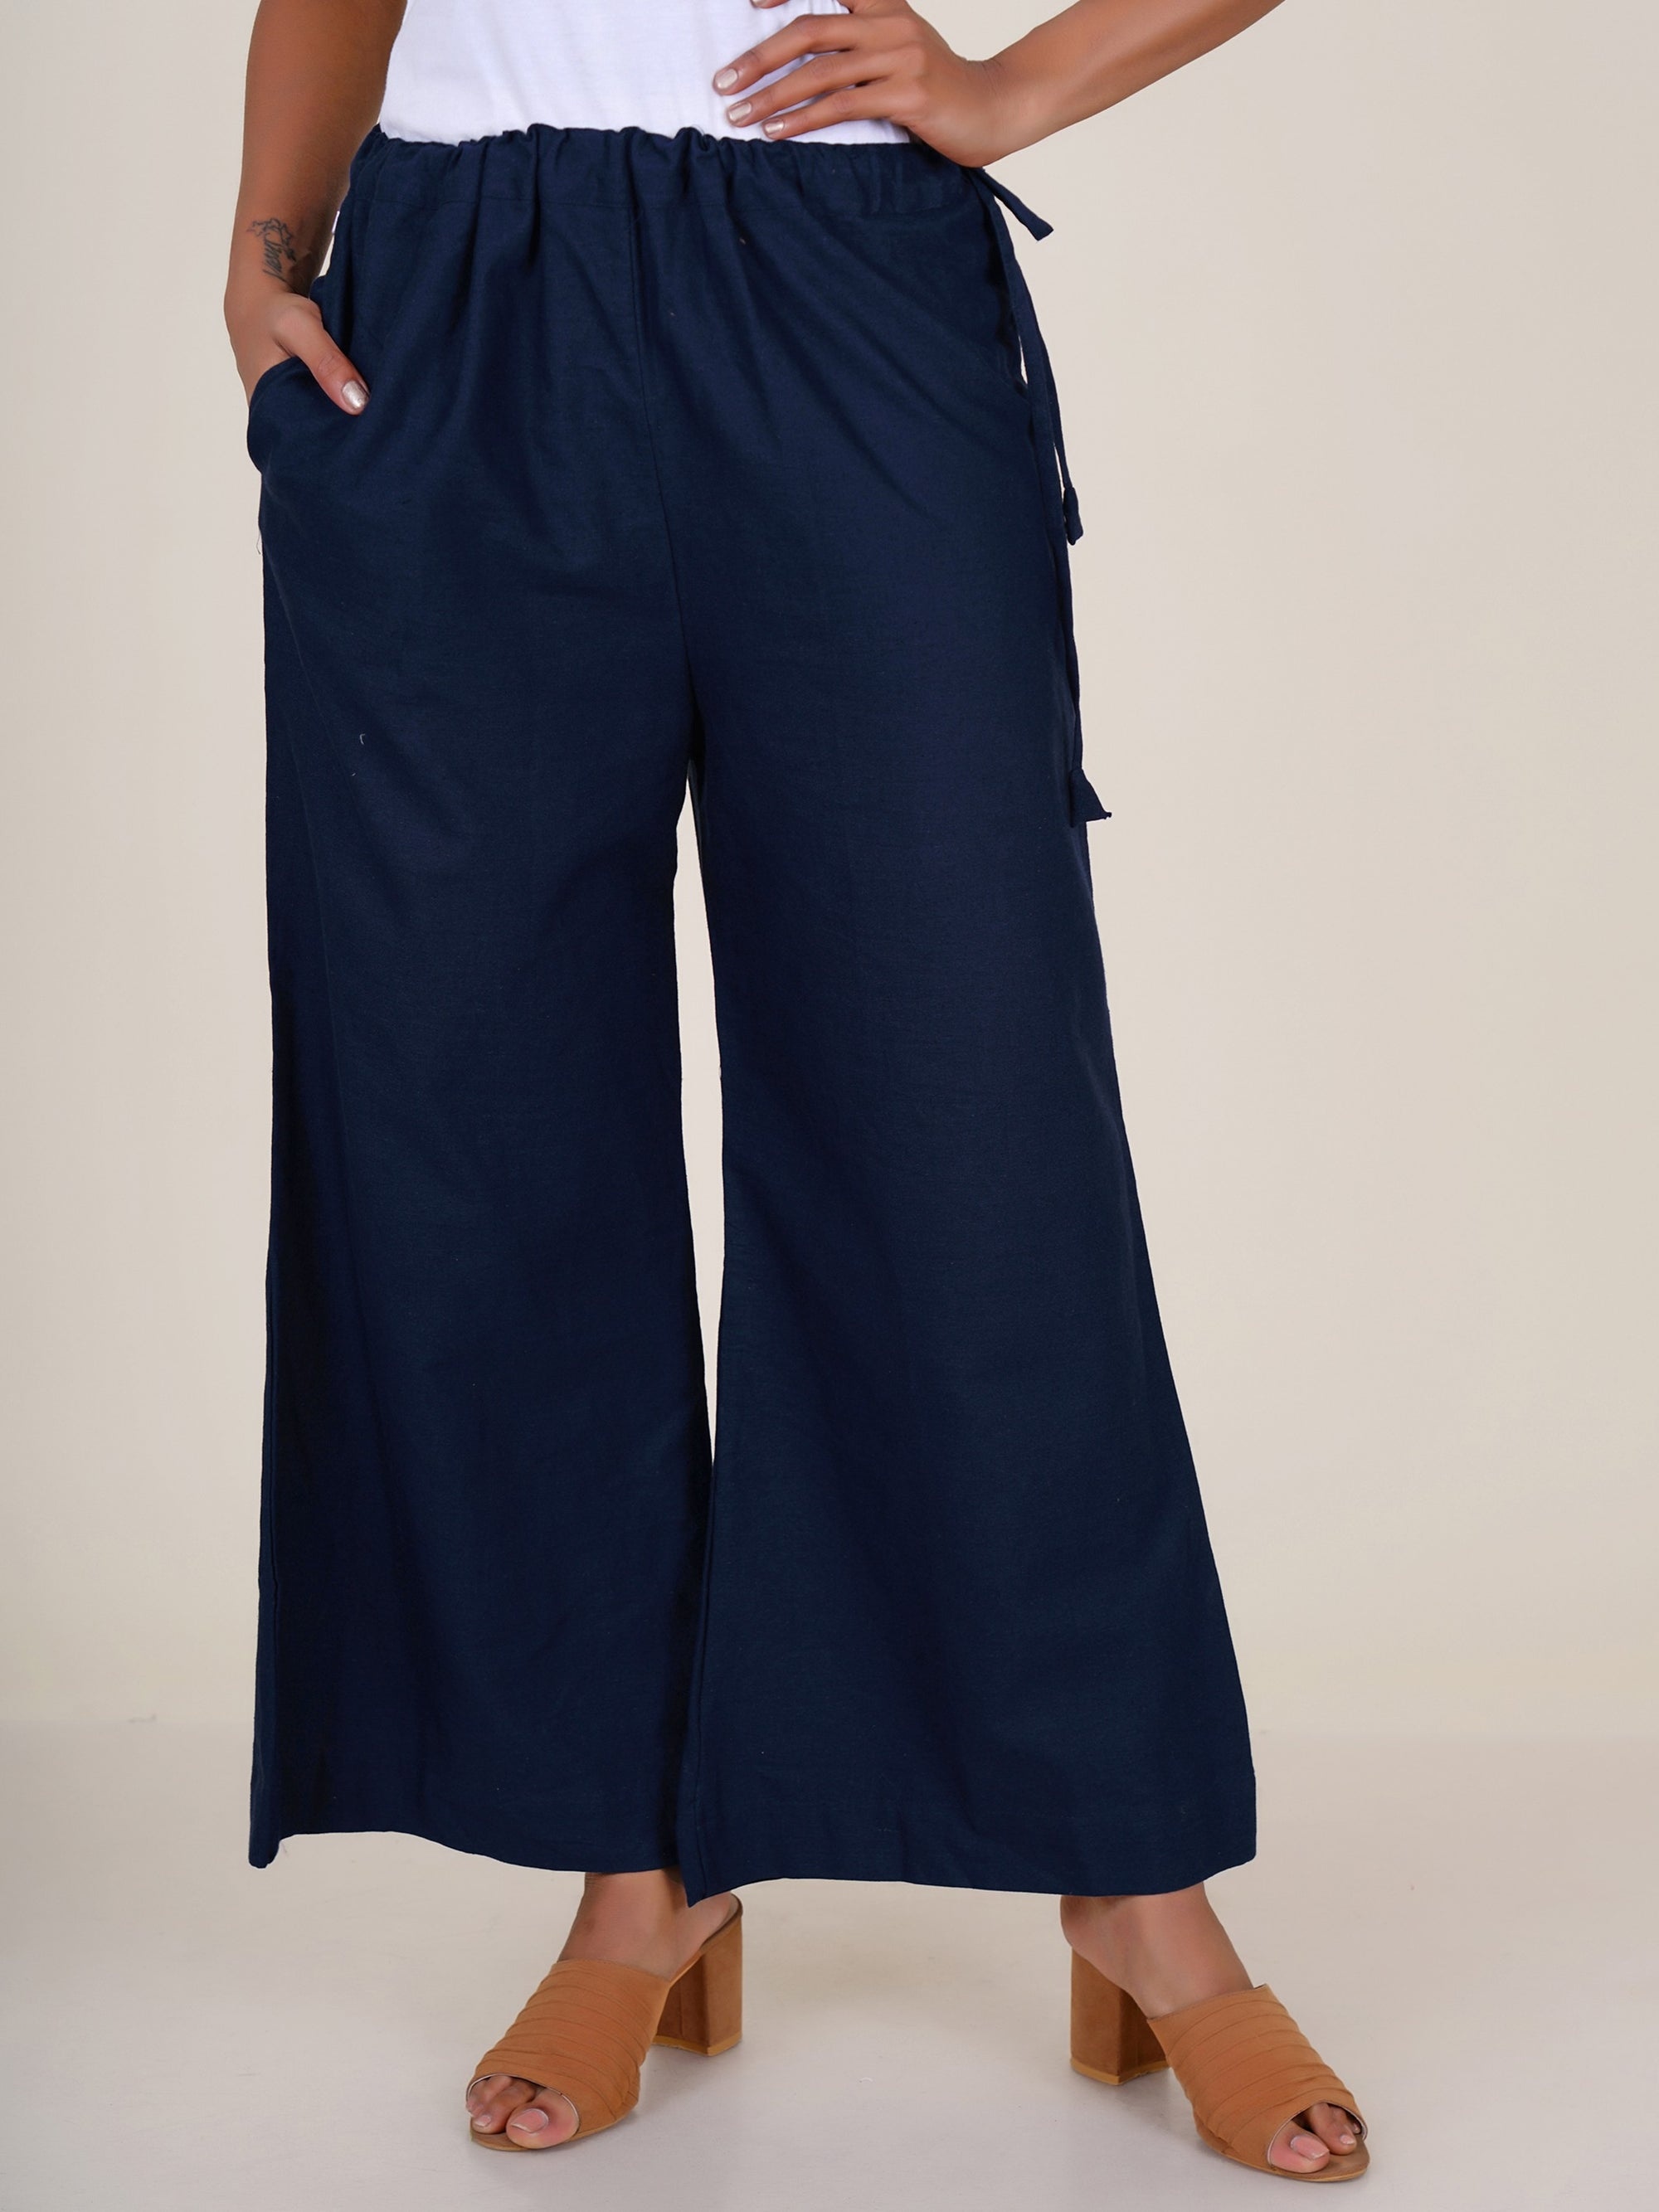 Cone Tassels Embellished Cotton Palazzo Pants - Navy Blue